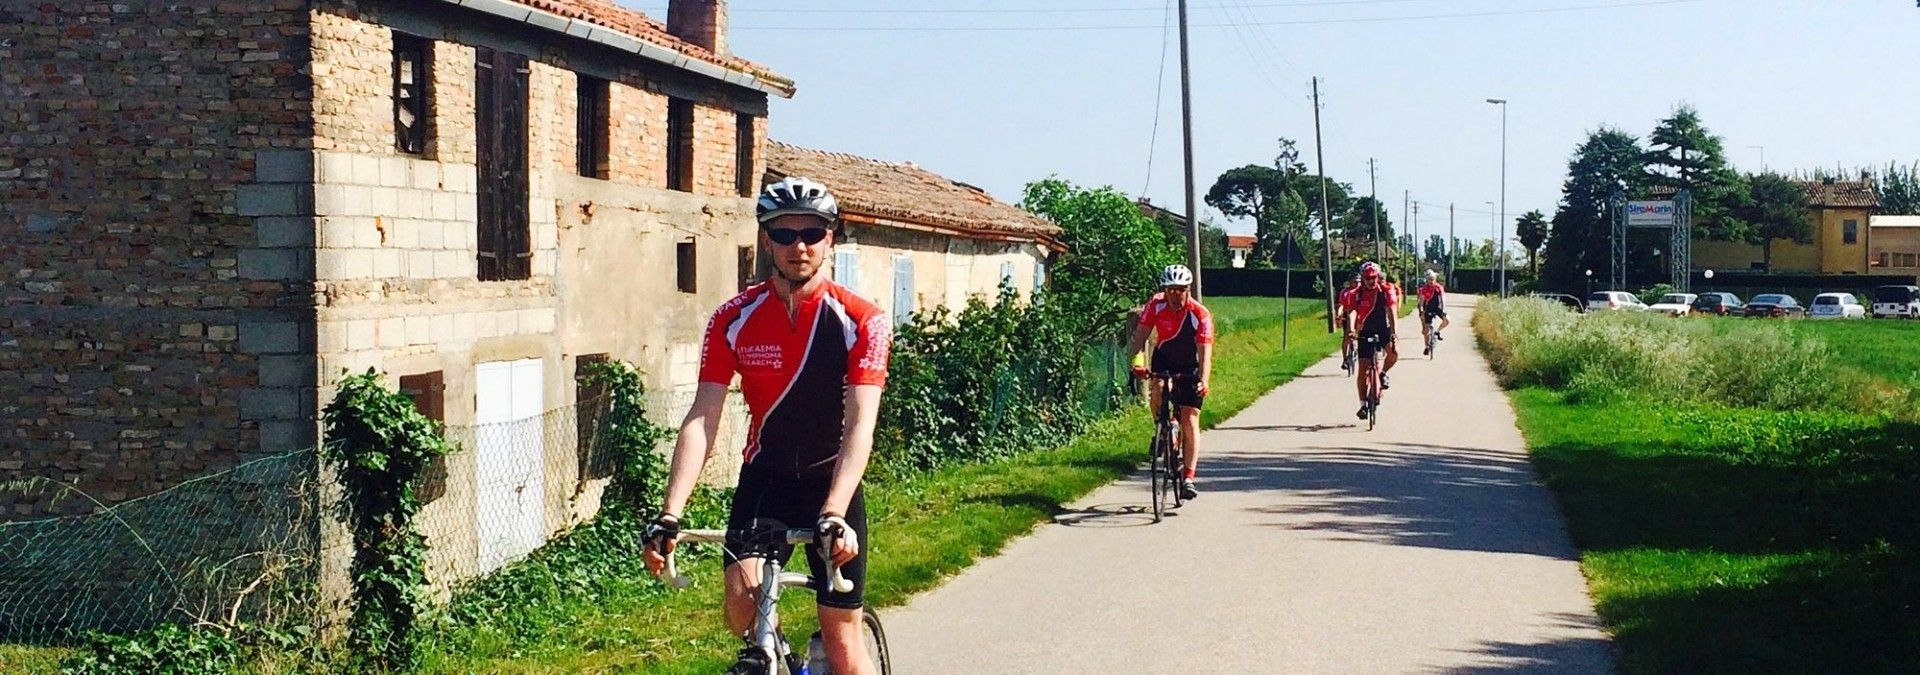 Cycling_country_roads_Italy.jpg